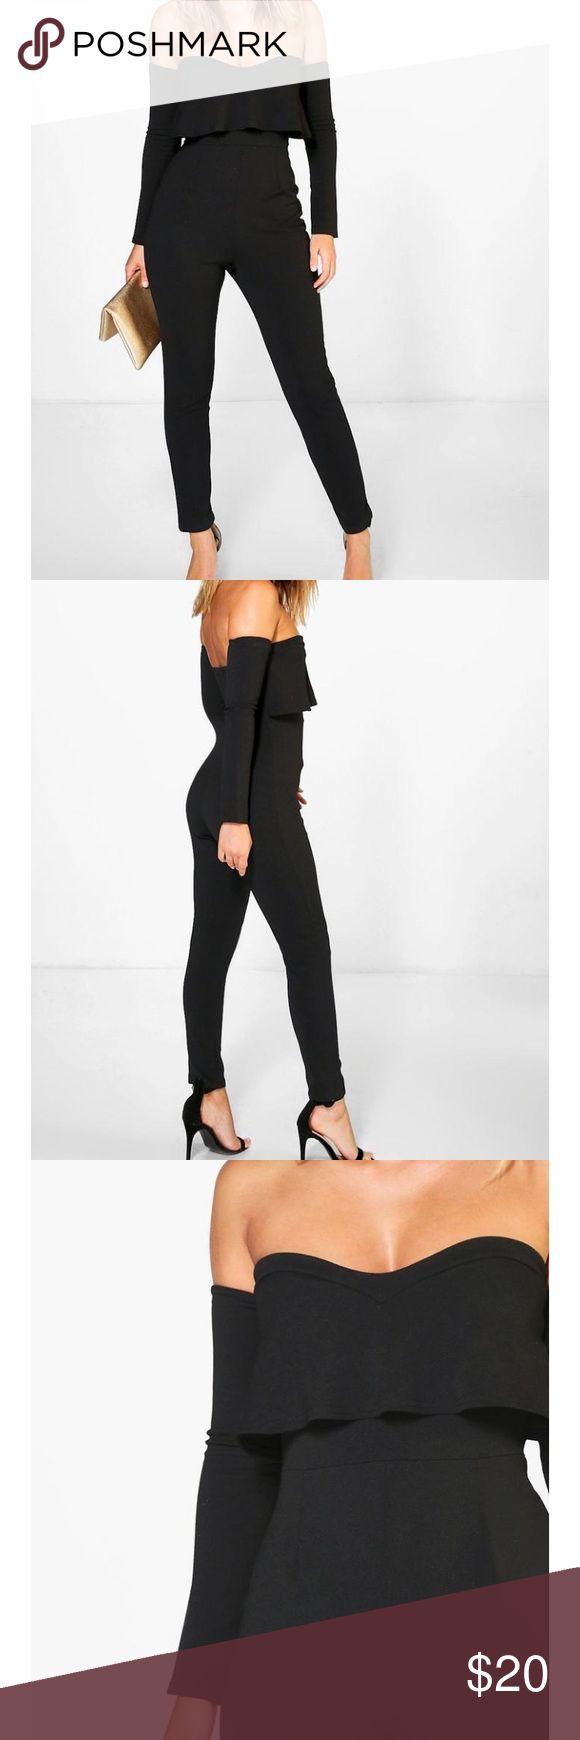 Black jumpsuit Black jumpsuit with off the shoulder sleeves that you can remove brand new never worn. Adorable on. Boohoo Other